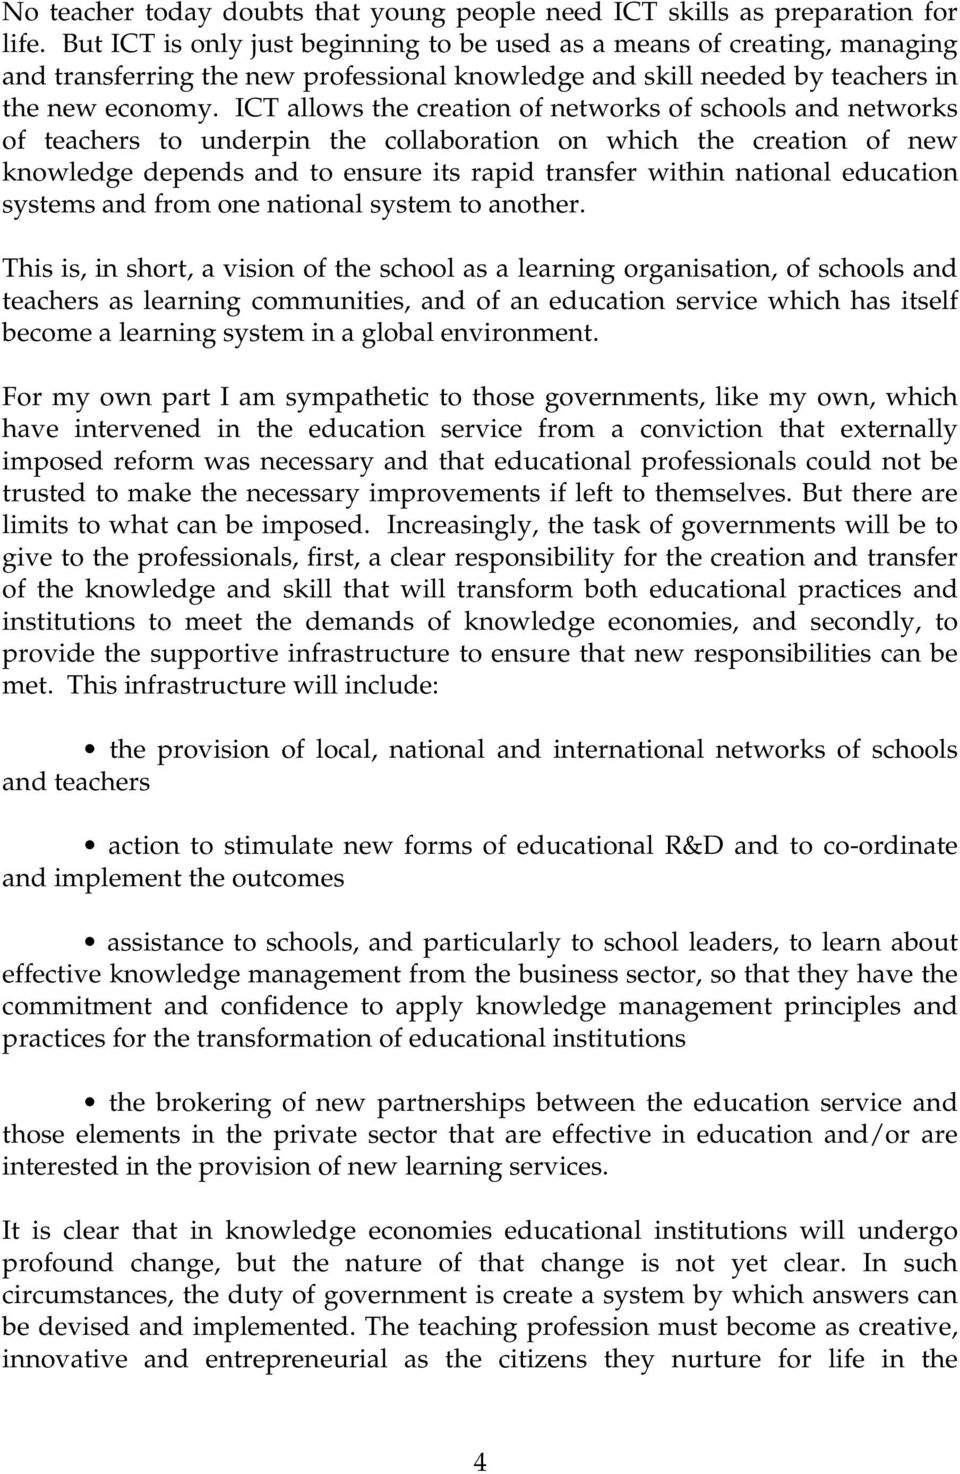 ICT allows the creation of networks of schools and networks of teachers to underpin the collaboration on which the creation of new knowledge depends and to ensure its rapid transfer within national